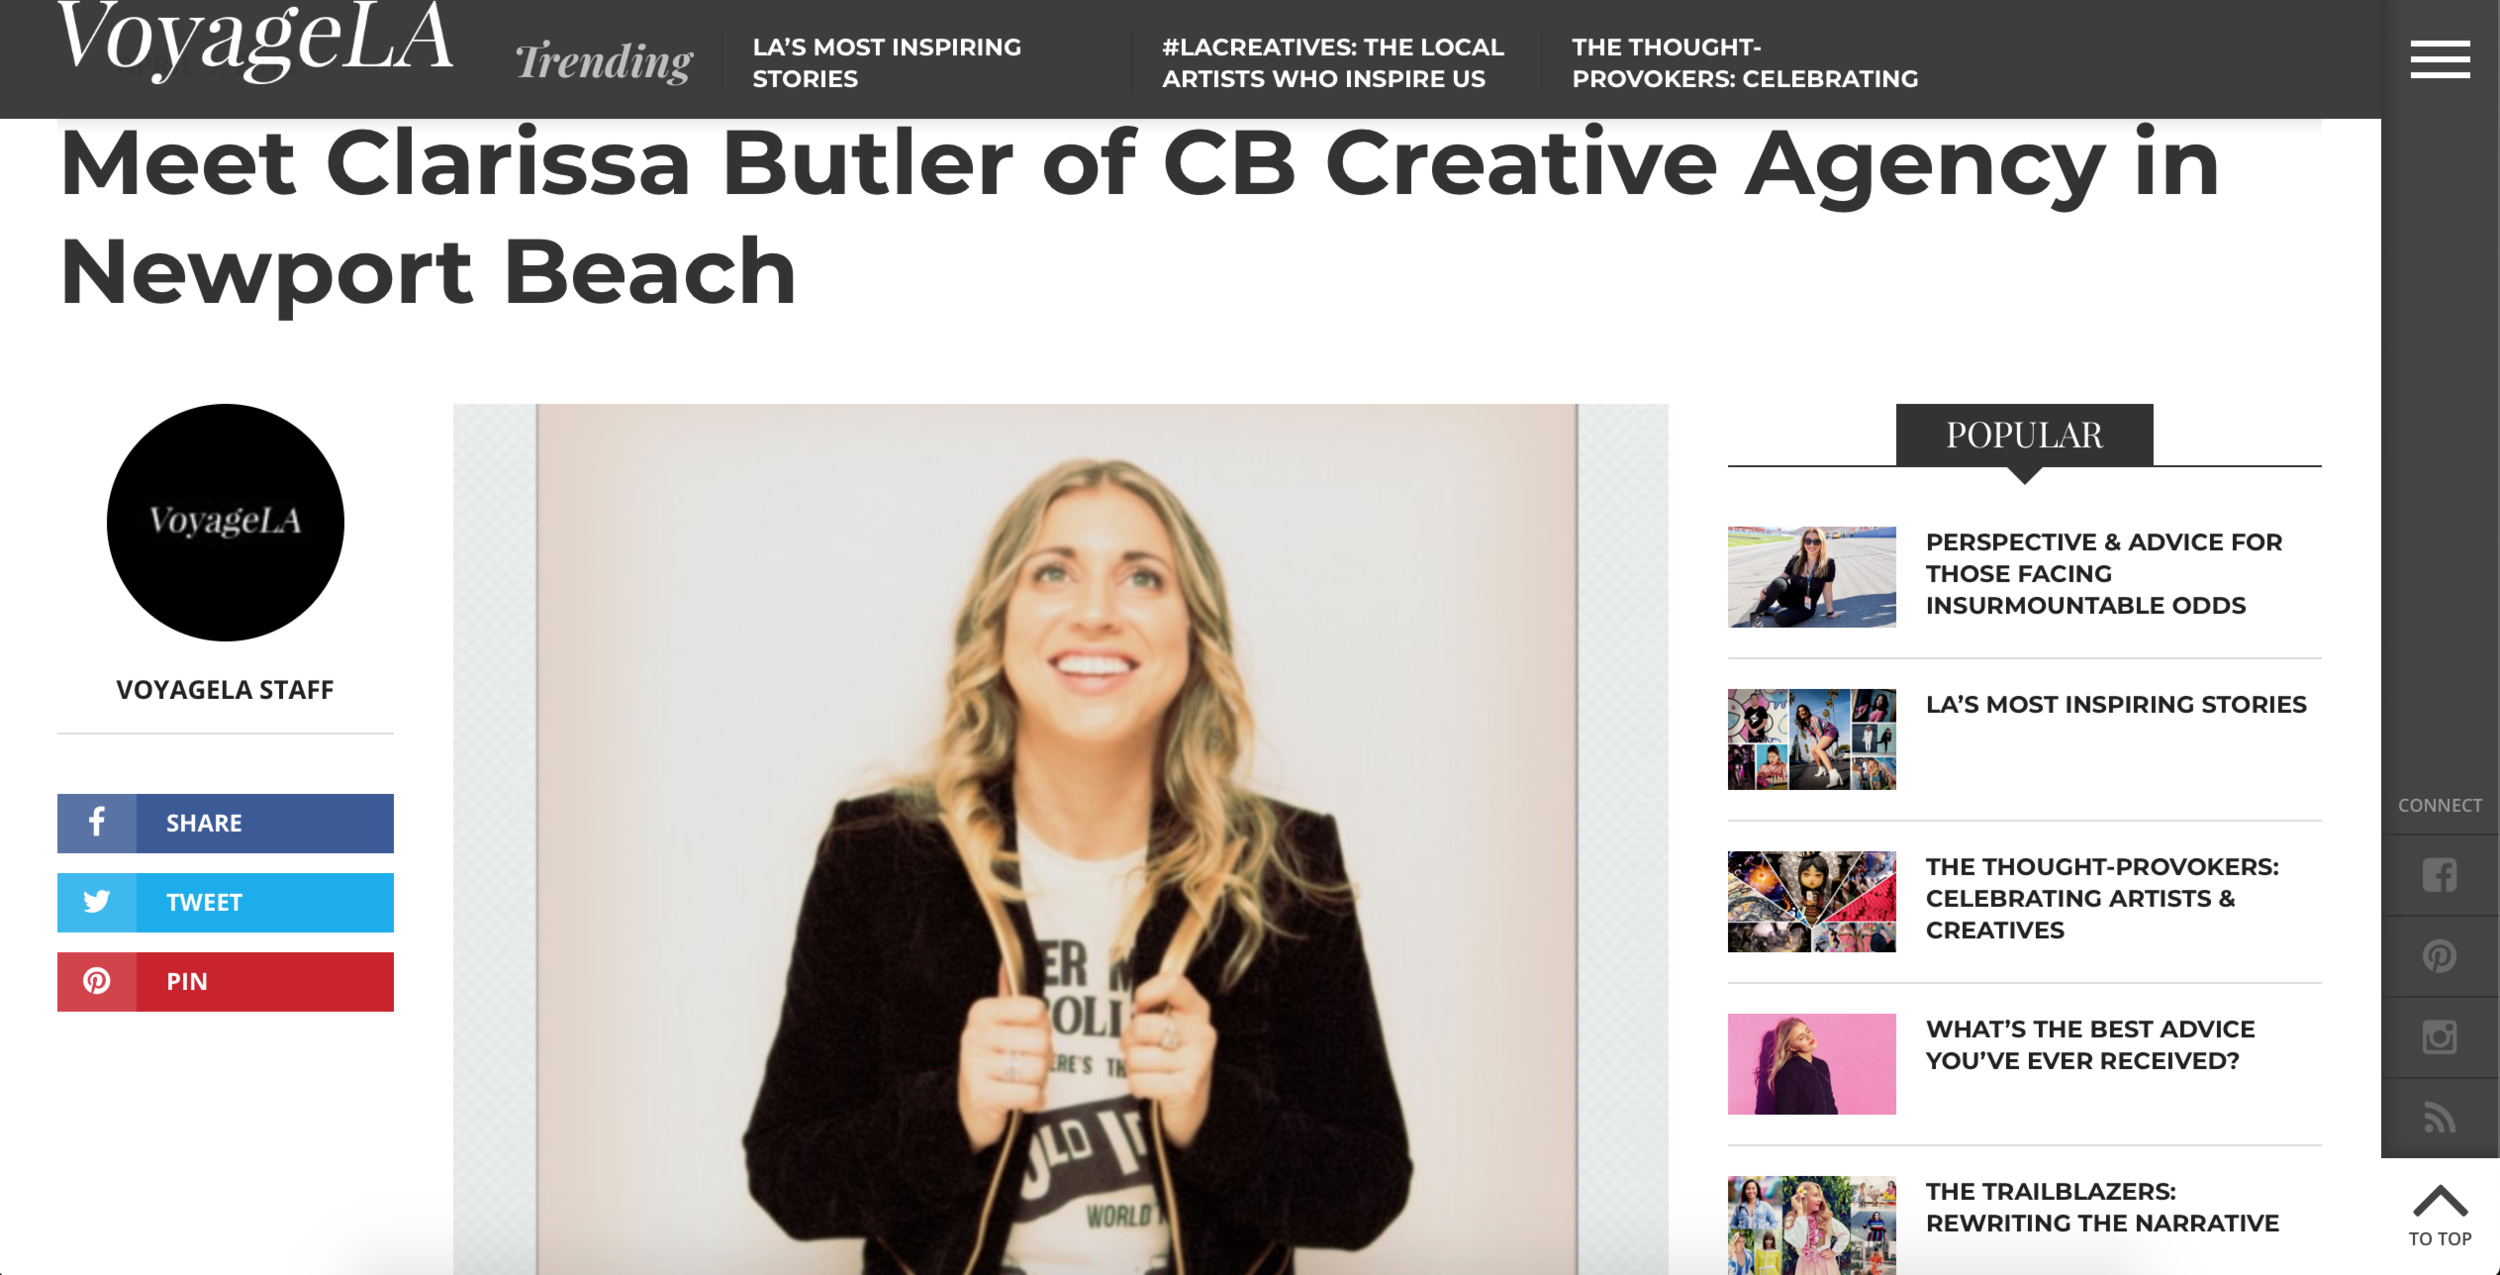 Our very own founder and creative director was featured for her talent for connecting people and her passion as an art curator, interior designer, and brand designer.